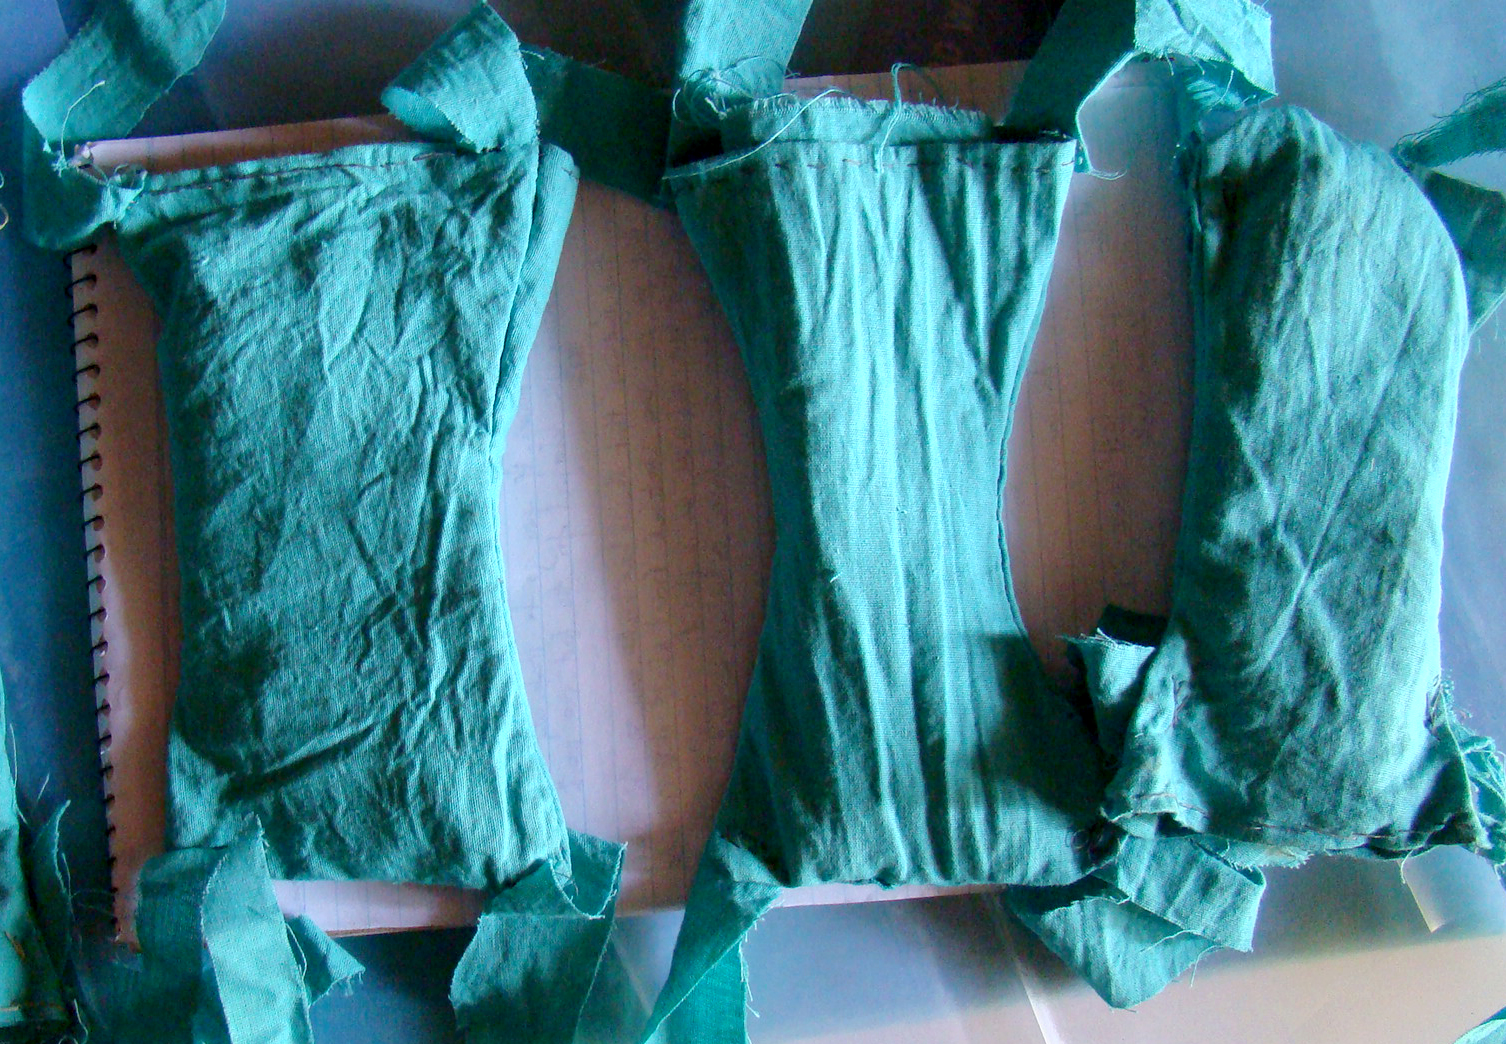 Sanitary pads made using local materials in Uganda